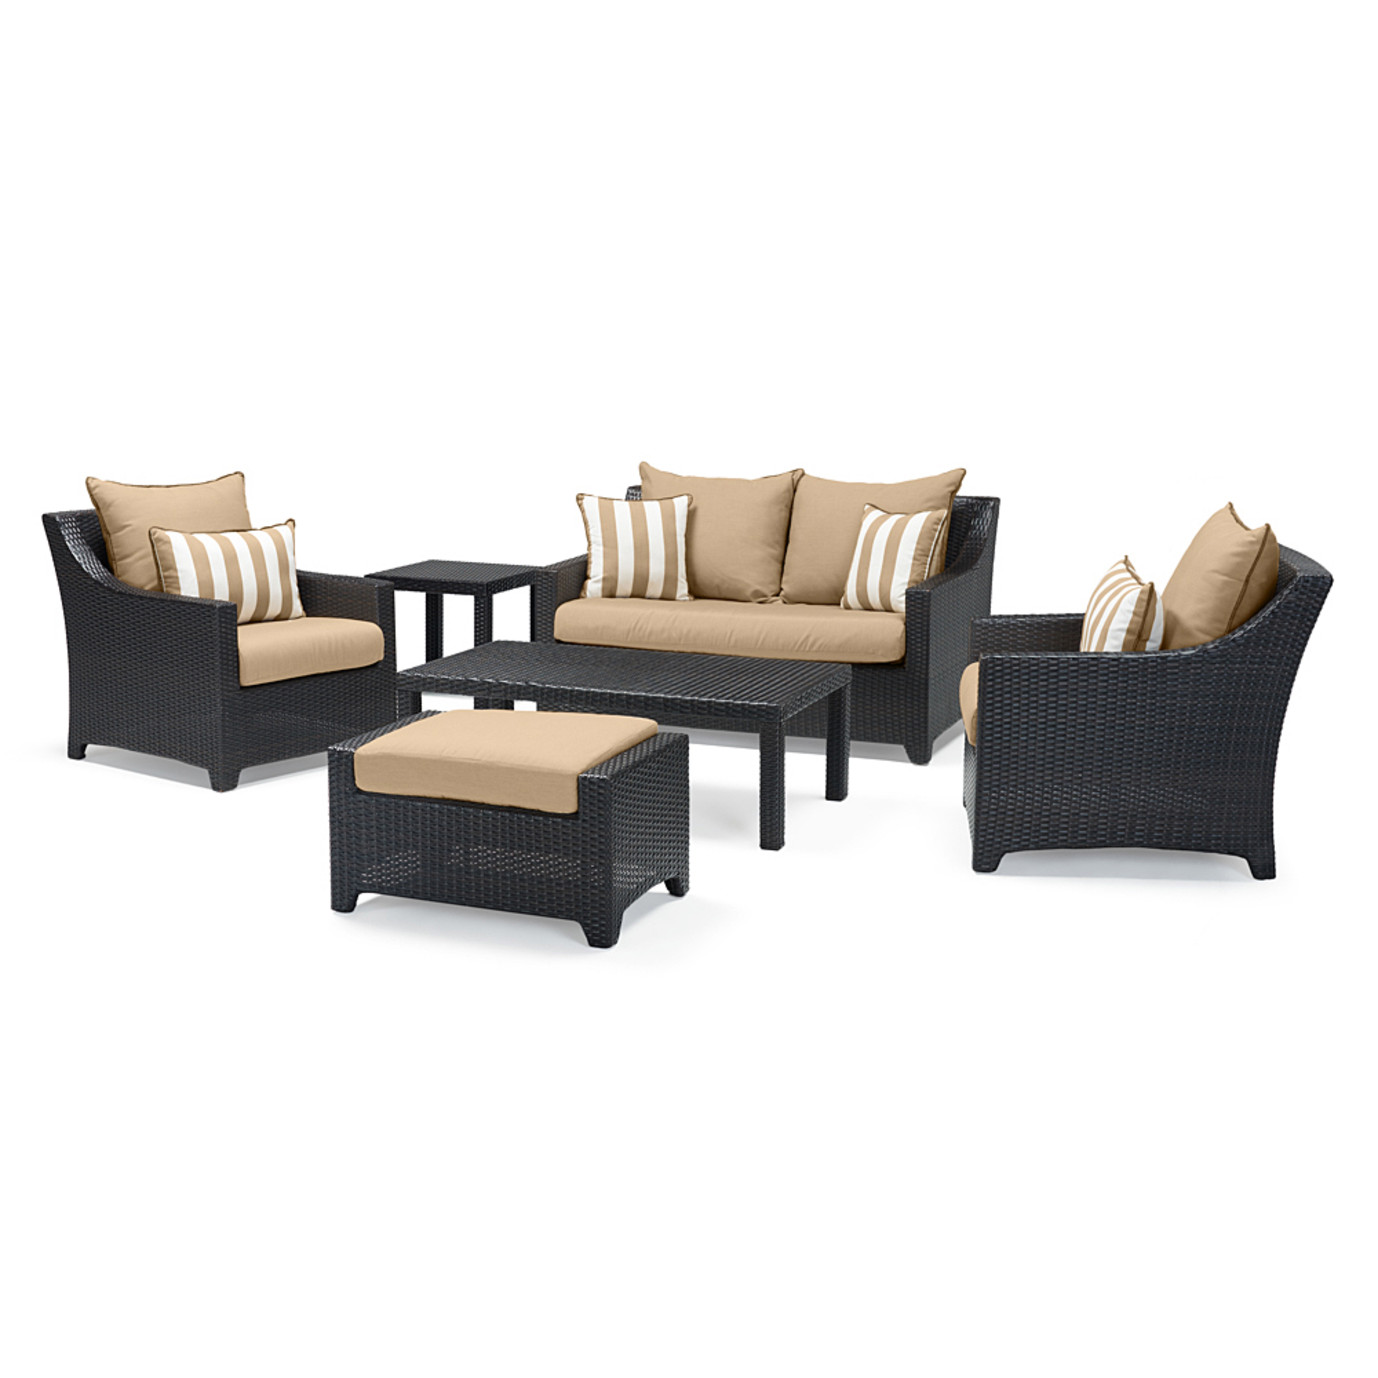 Deco™ 6 Piece Love & Club Seating Set - Maxim Beige